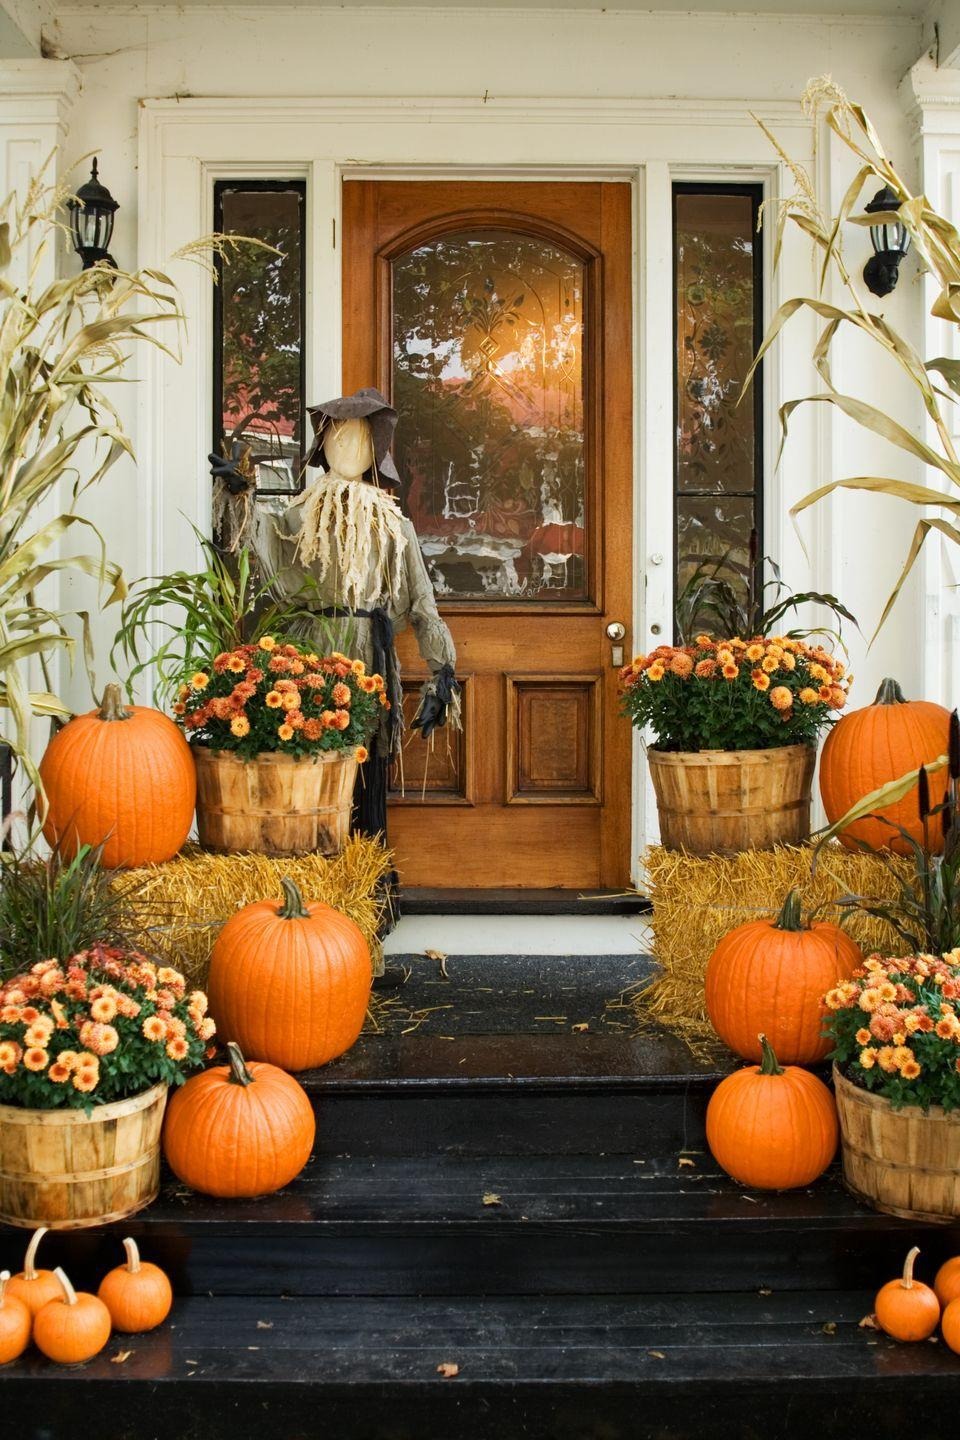 """<p>Bring a dose of texture to your Halloween setup with a pair of decorative hay bales, which are ideal for showcasing flowers and pumpkins. <br><br><a class=""""link rapid-noclick-resp"""" href=""""https://go.redirectingat.com?id=74968X1596630&url=https%3A%2F%2Fwww.michaels.com%2F13in-decorative-straw-bale-by-ashland%2F10234532.html&sref=https%3A%2F%2Fwww.goodhousekeeping.com%2Fholidays%2Fhalloween-ideas%2Fg32948621%2Fhalloween-door-decorations%2F"""" rel=""""nofollow noopener"""" target=""""_blank"""" data-ylk=""""slk:SHOP DECORATIVE STRAW"""">SHOP DECORATIVE STRAW</a></p>"""